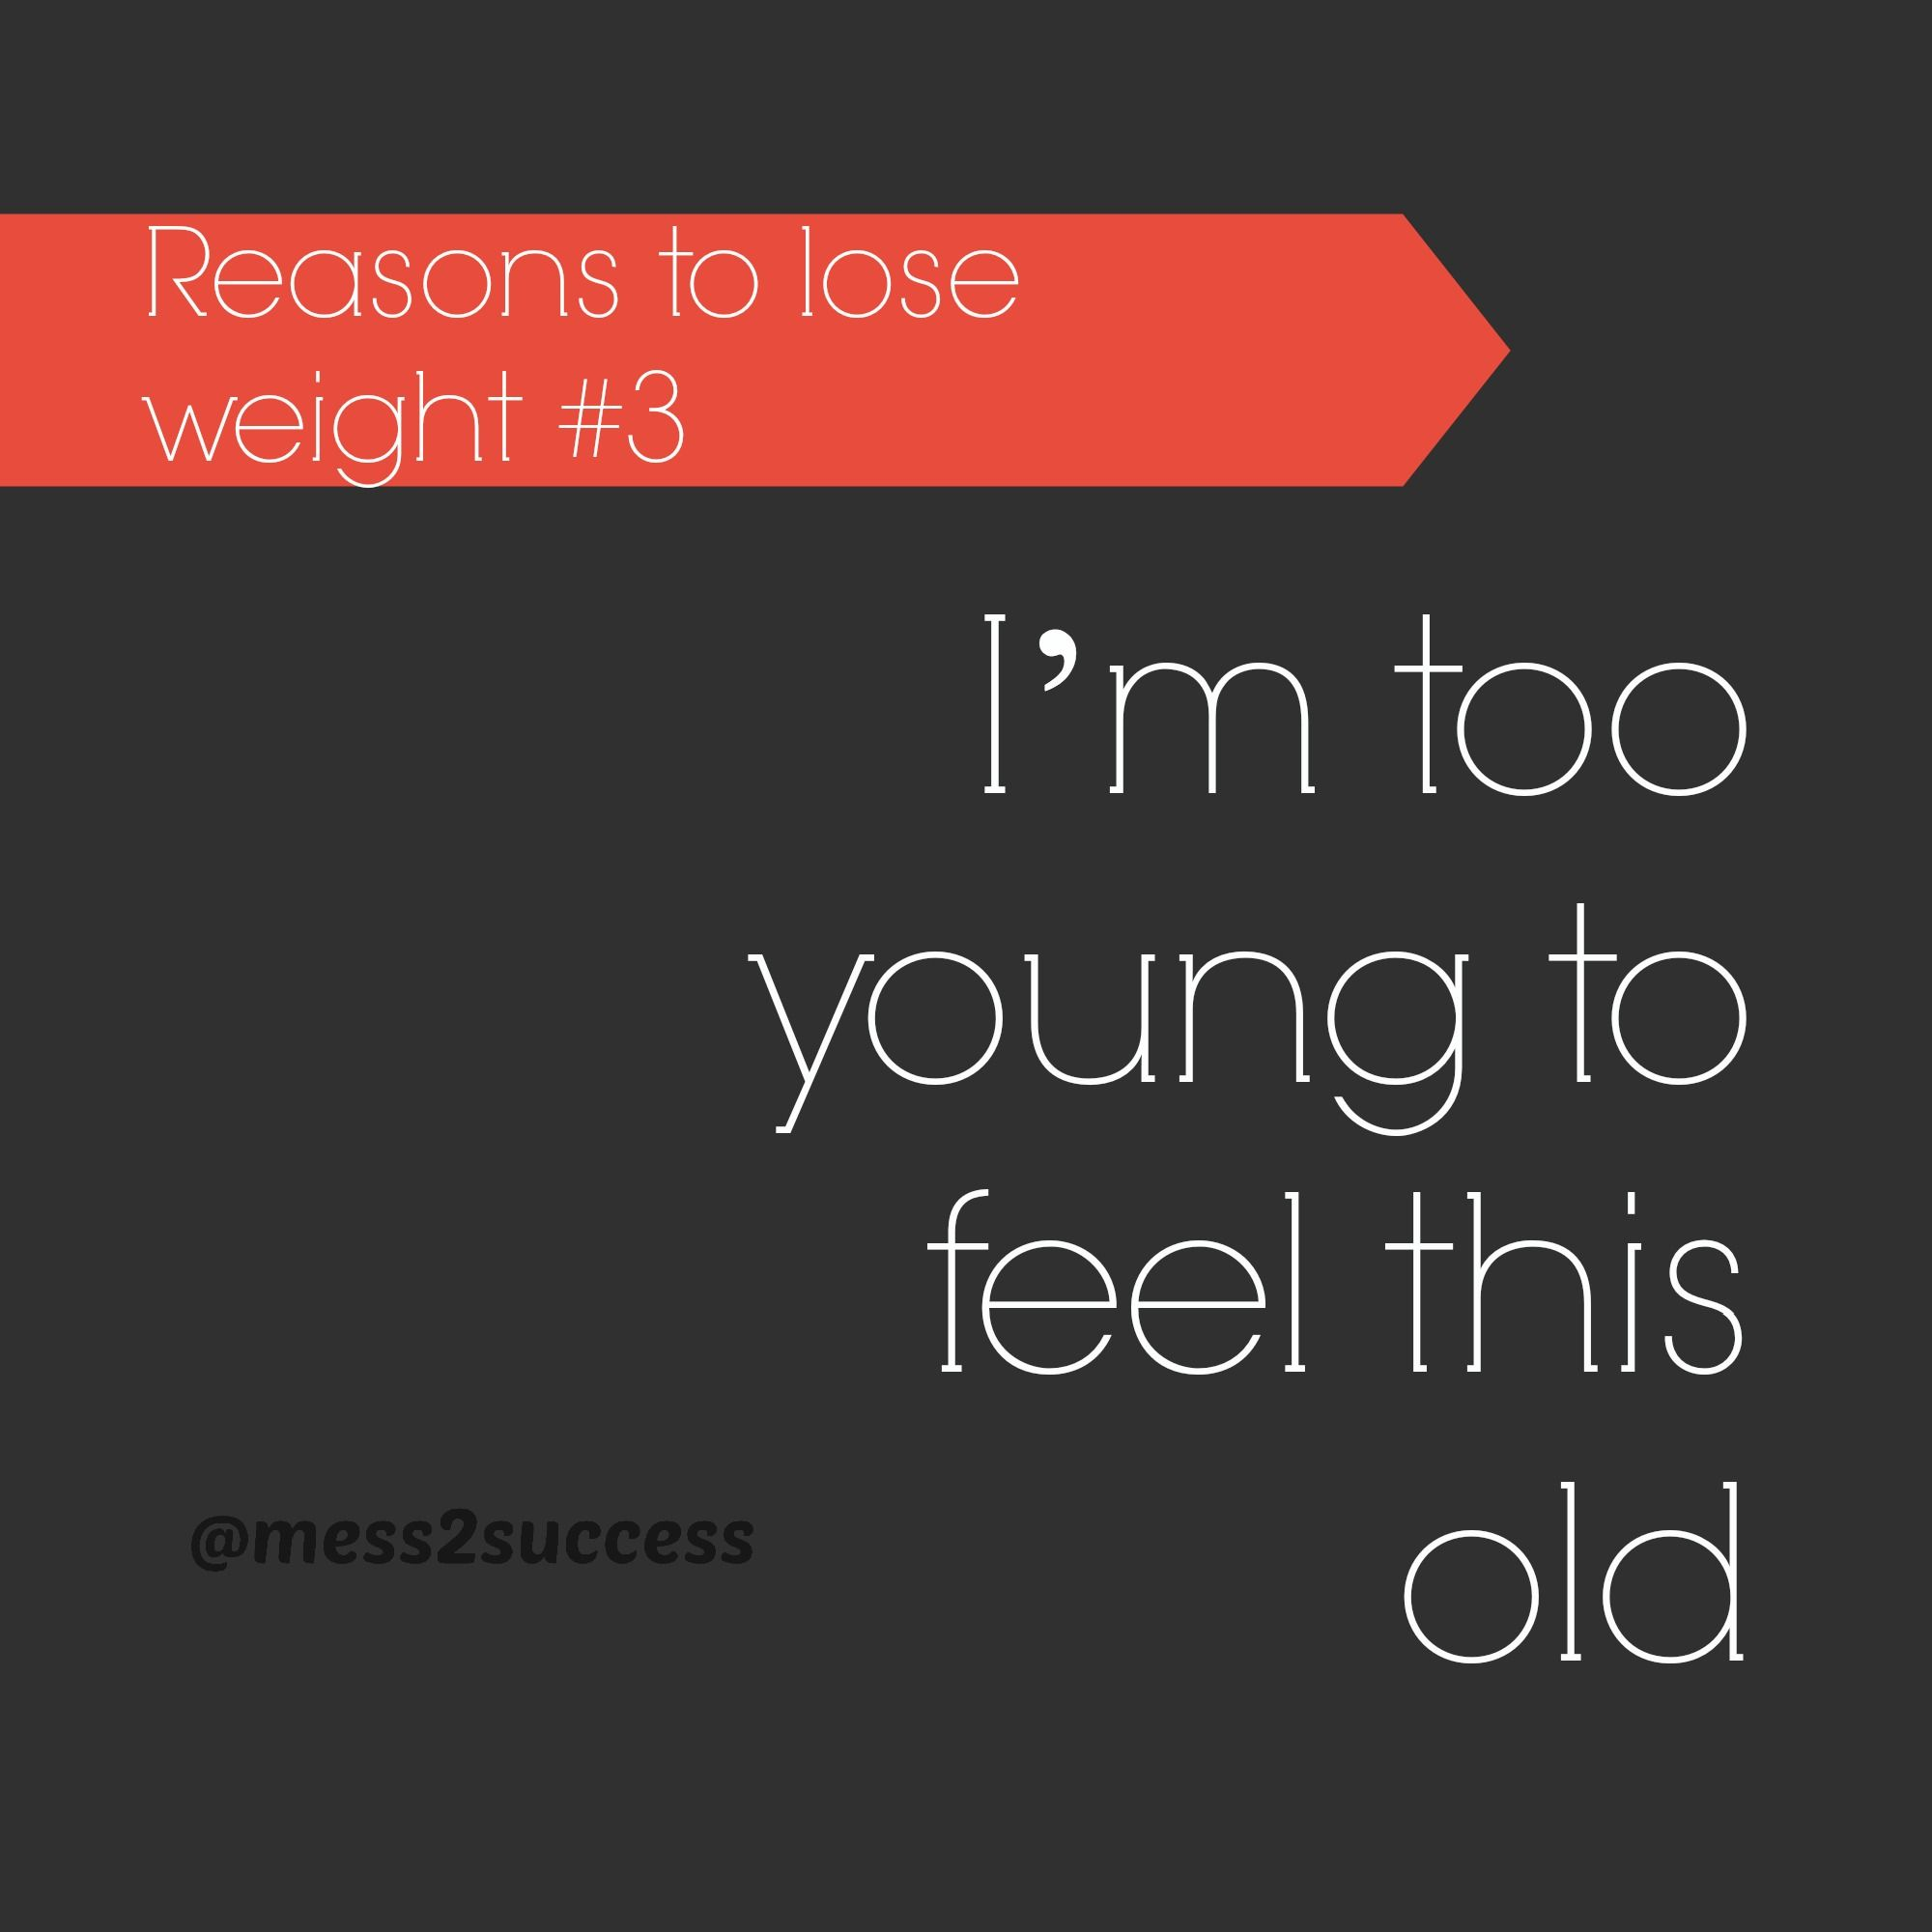 Losing Weight Quotes Reasons To Lose Weight 3  Motivation  Pinterest  Lost Weight